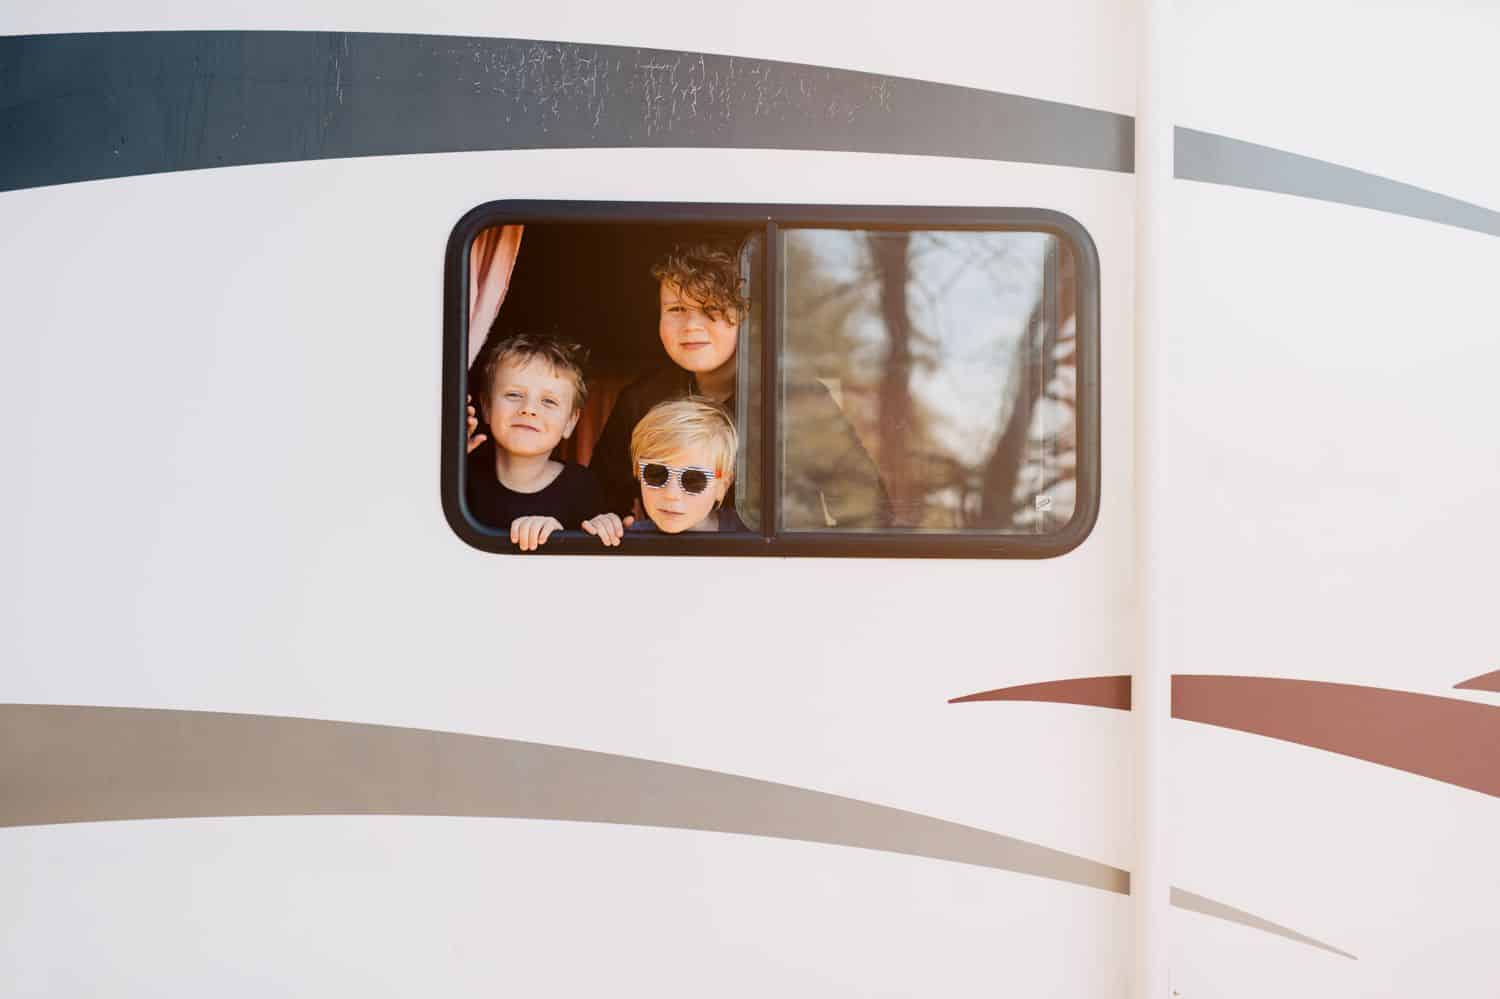 Three brothers look out the window of their RV. By Kate T. Parker for The Heart of a Boy